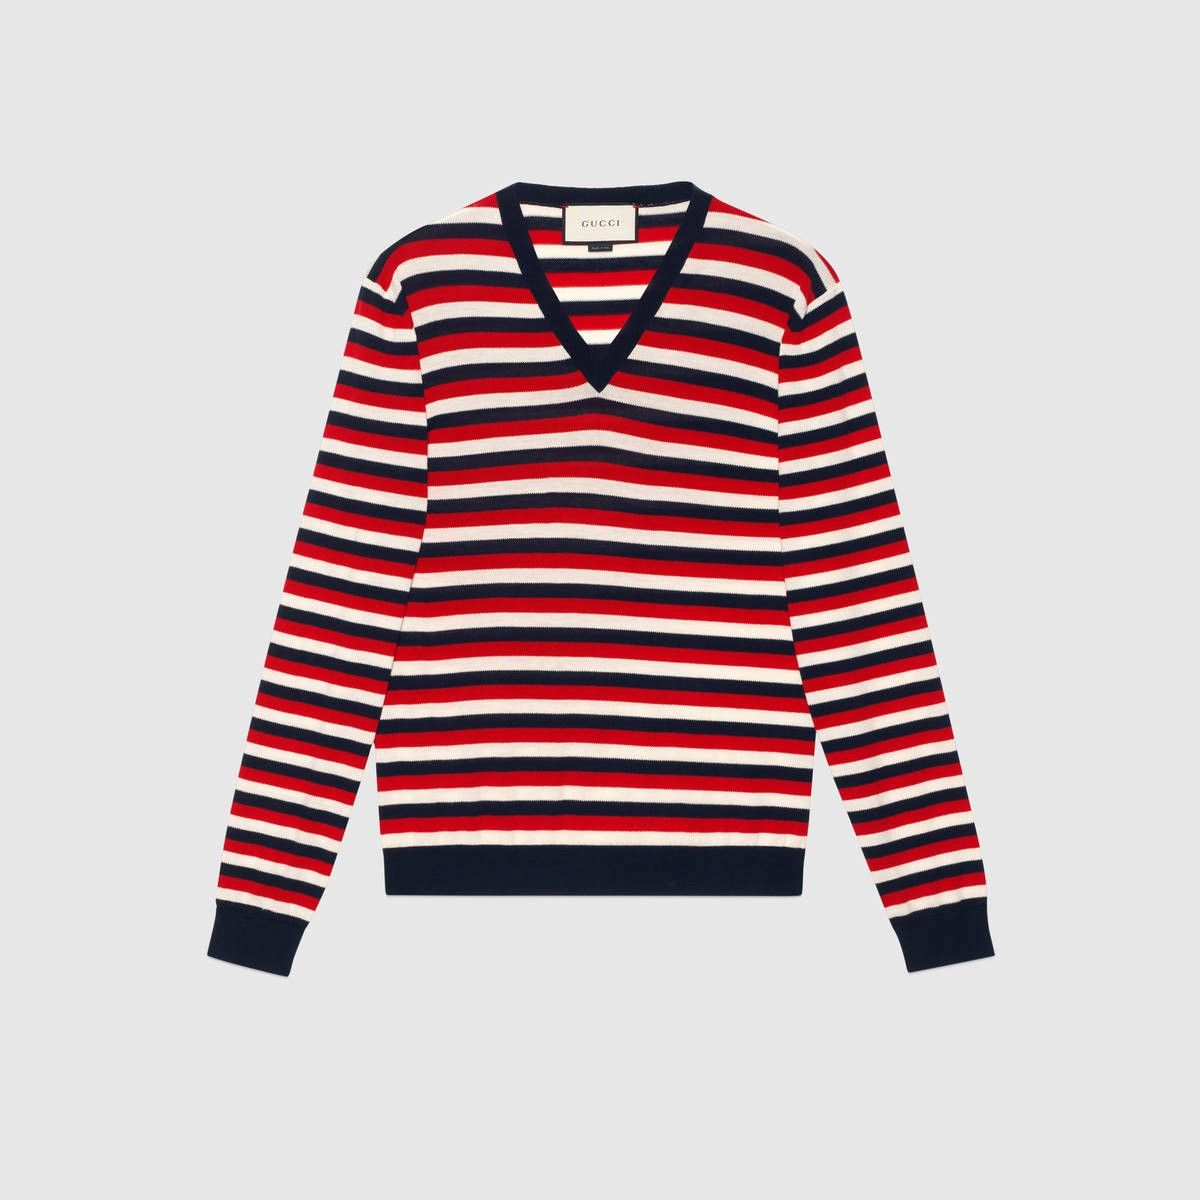 GUCCI Striped wool V-neck sweater - blue, red and white wool ...